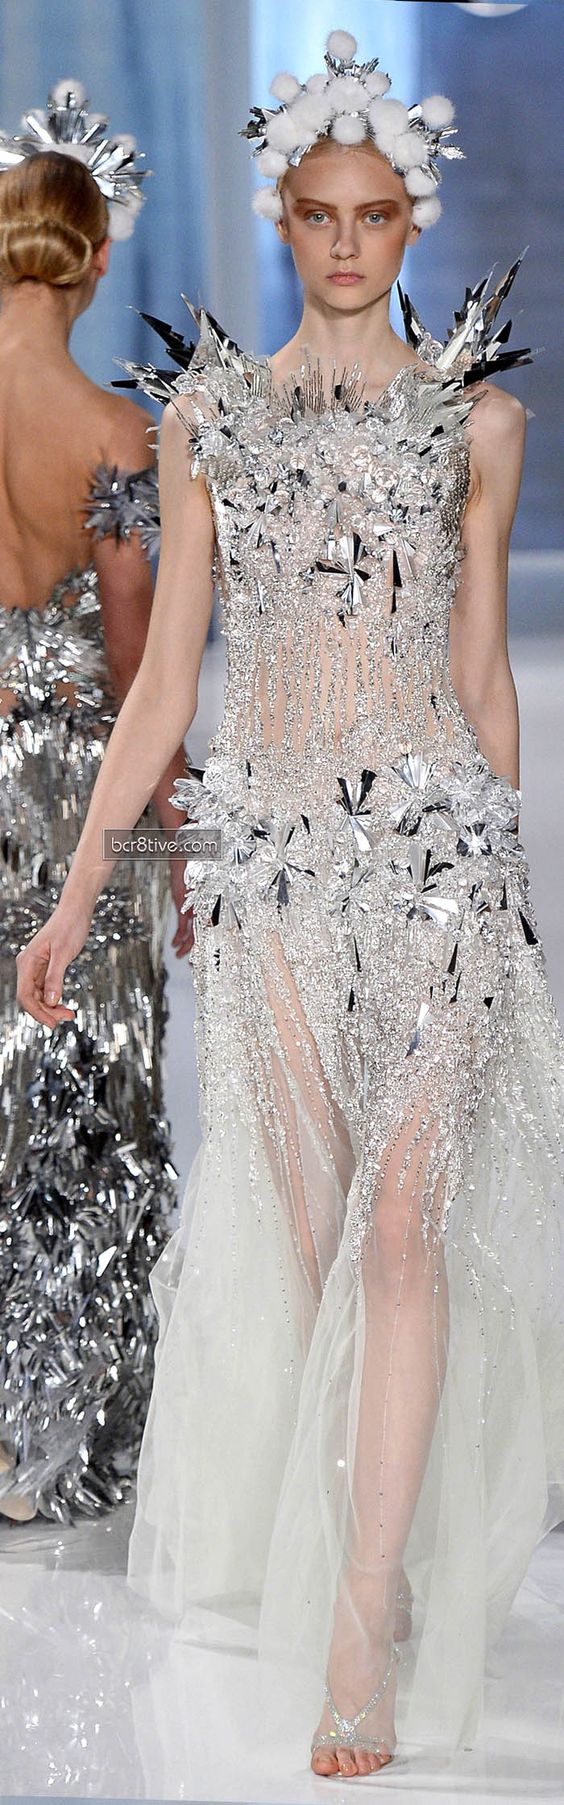 Valentin Yudashkin FW 2013-14....The sharp spiky crystal and bead that encrust this gown give it a texture that likes it ice and snow for a frozen ice princess look.